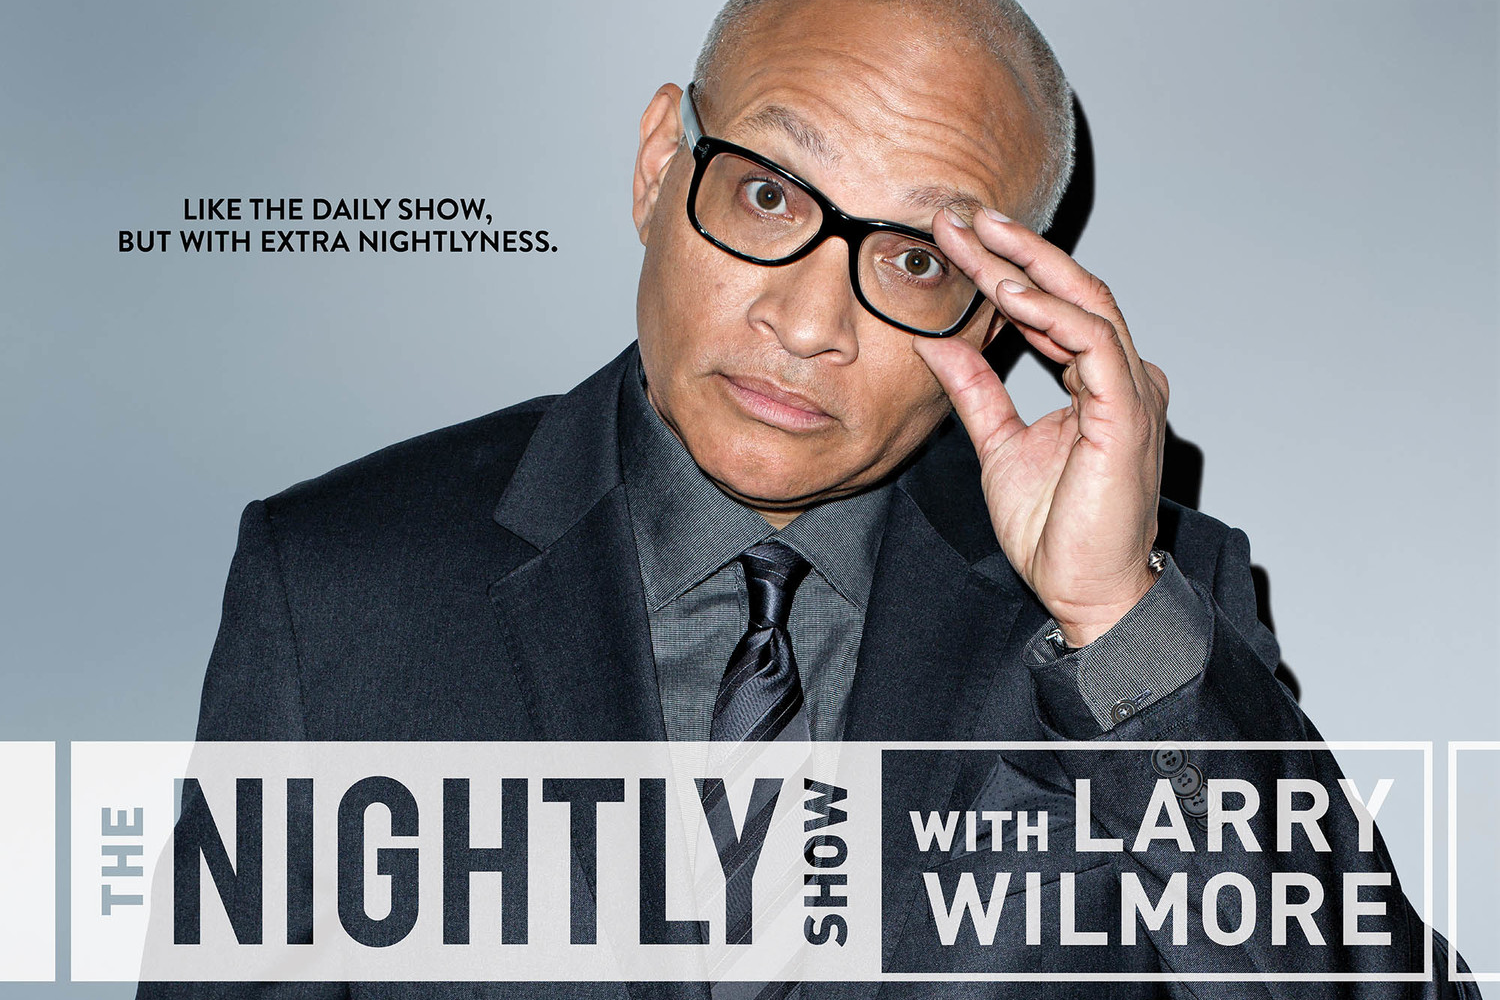 Comedy Central- The Nightly Show with Larry Wilmore